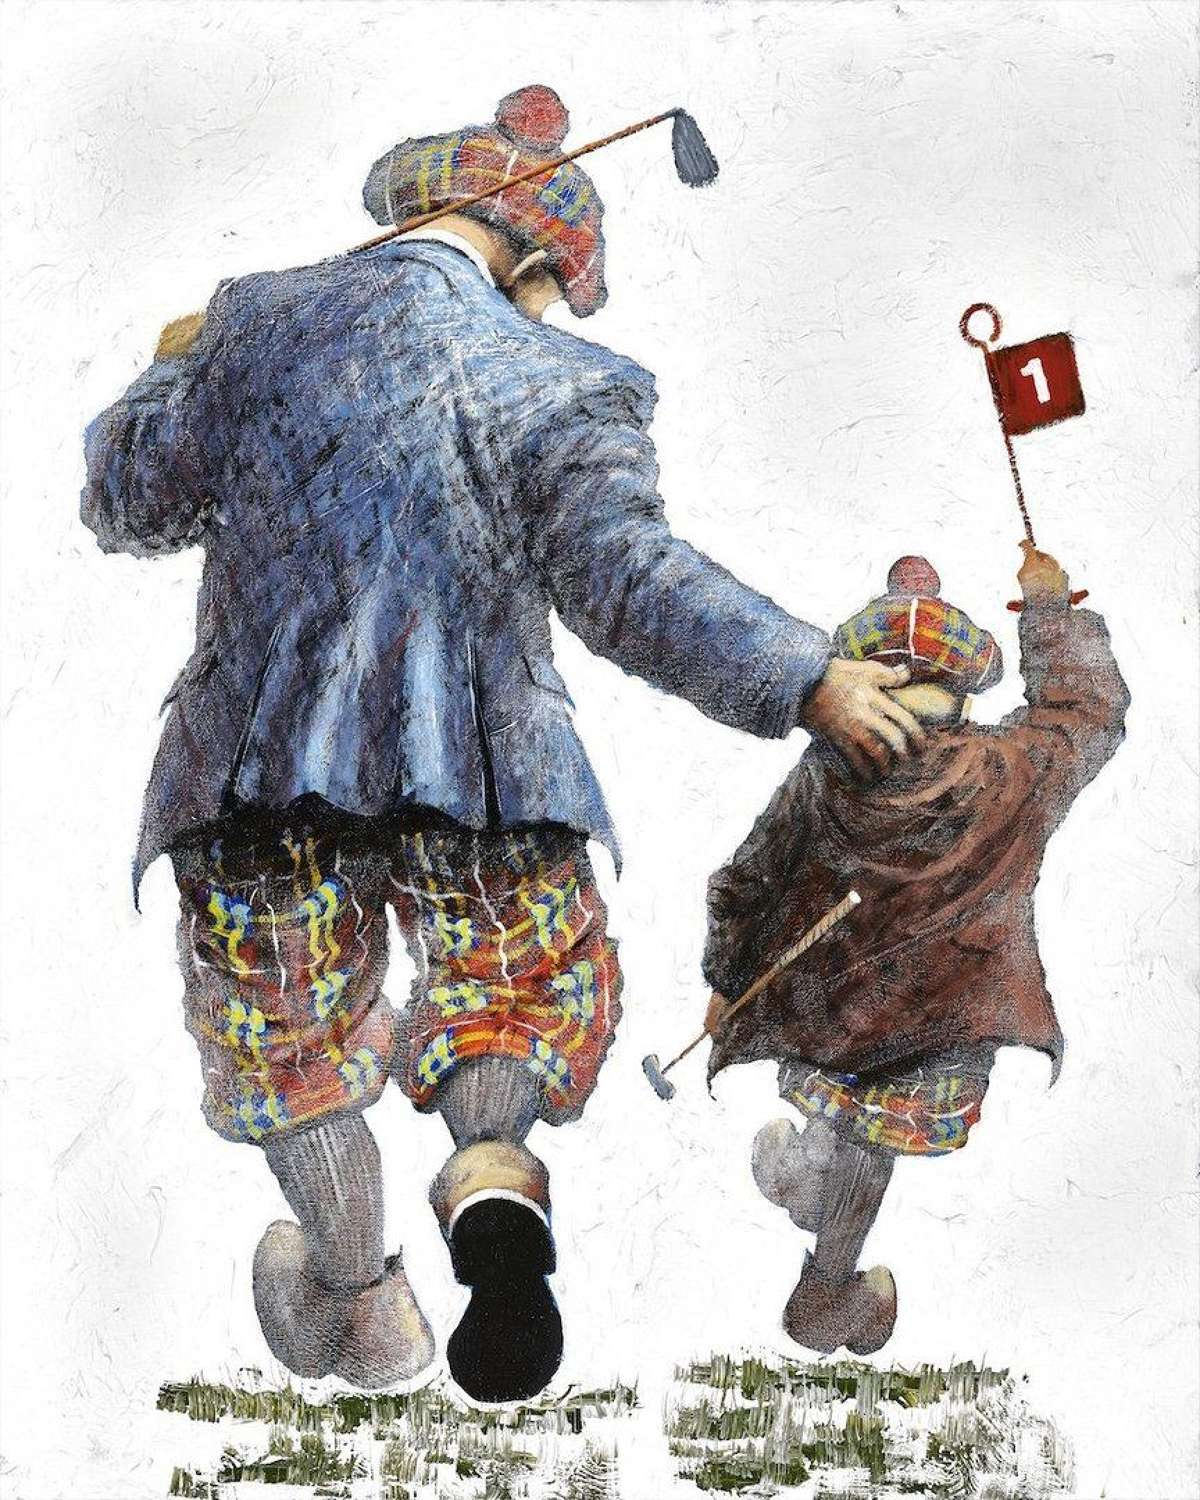 Pitch and Putt - Framed Art Print By Alexander Millar